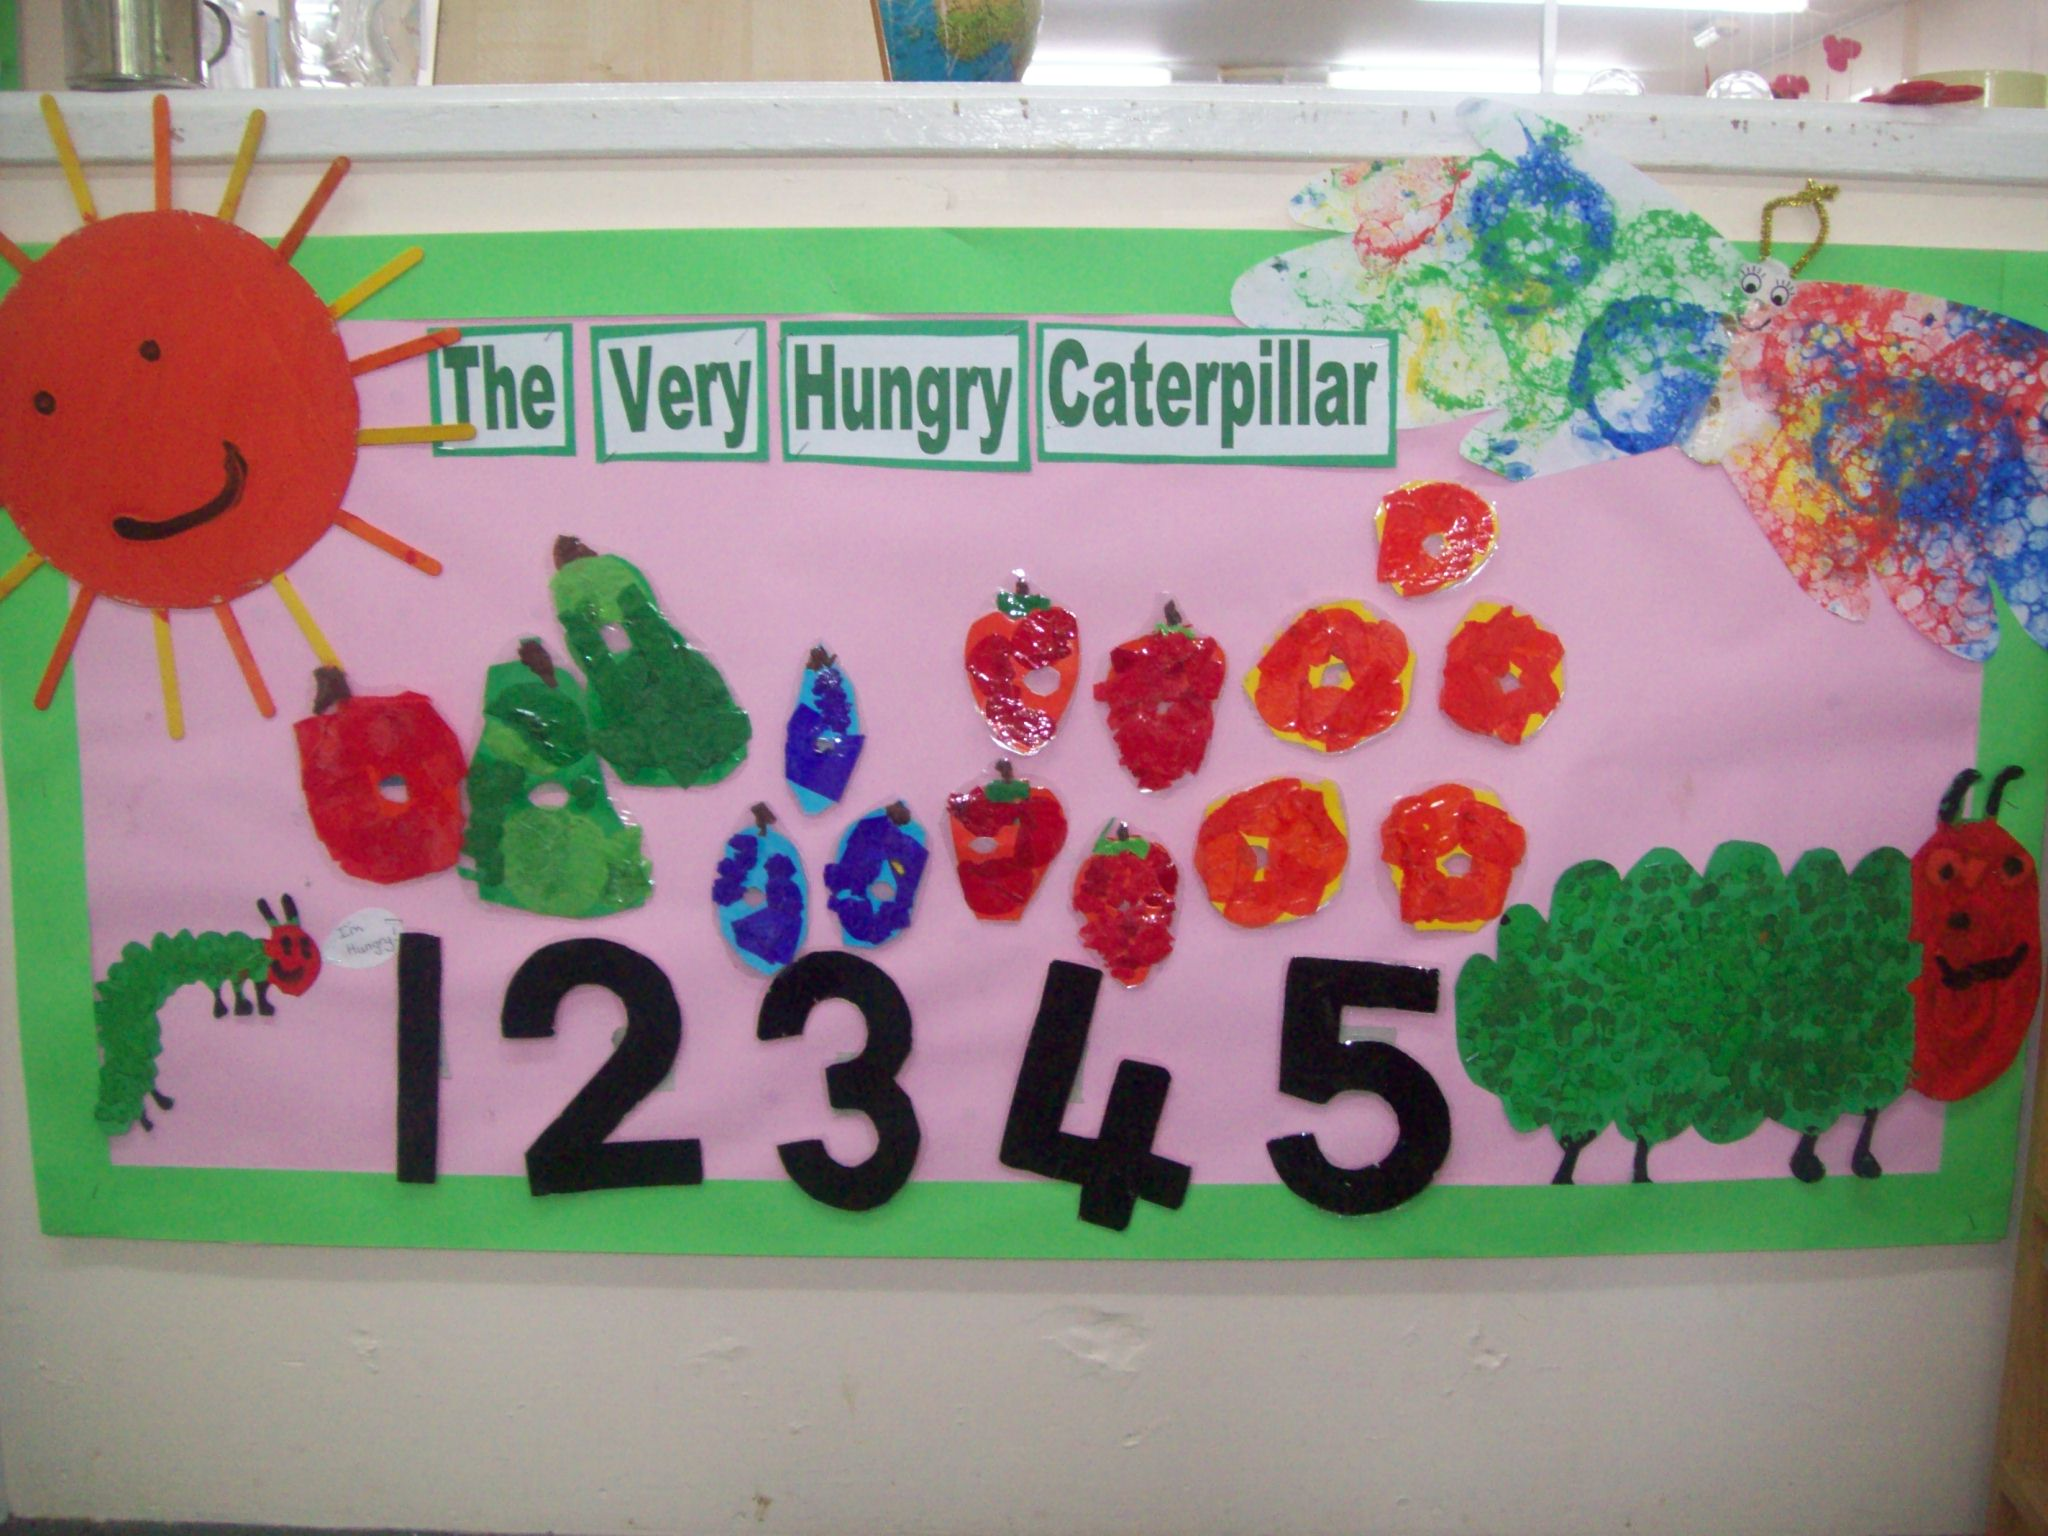 The Hungry Caterpillar display, Calne, May 2016